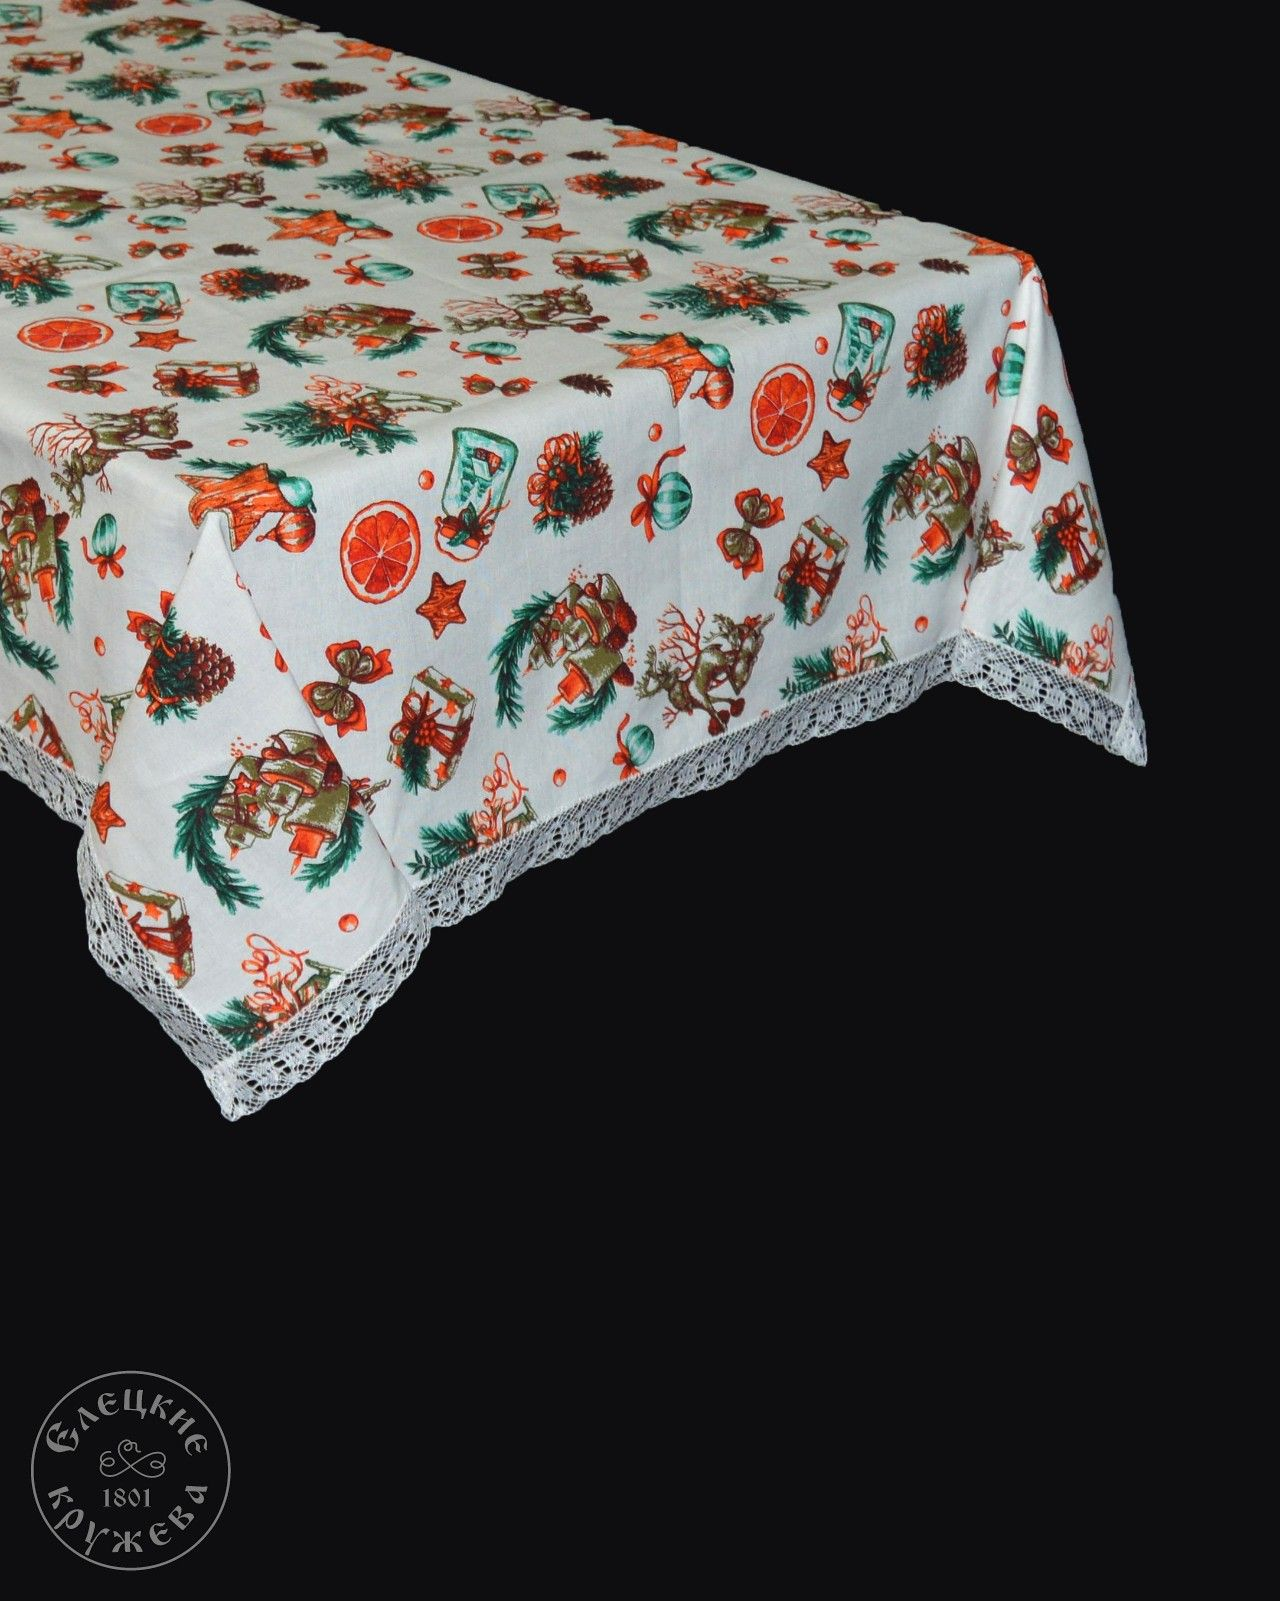 Yelets lace / Linen tablecloth S2247Ts